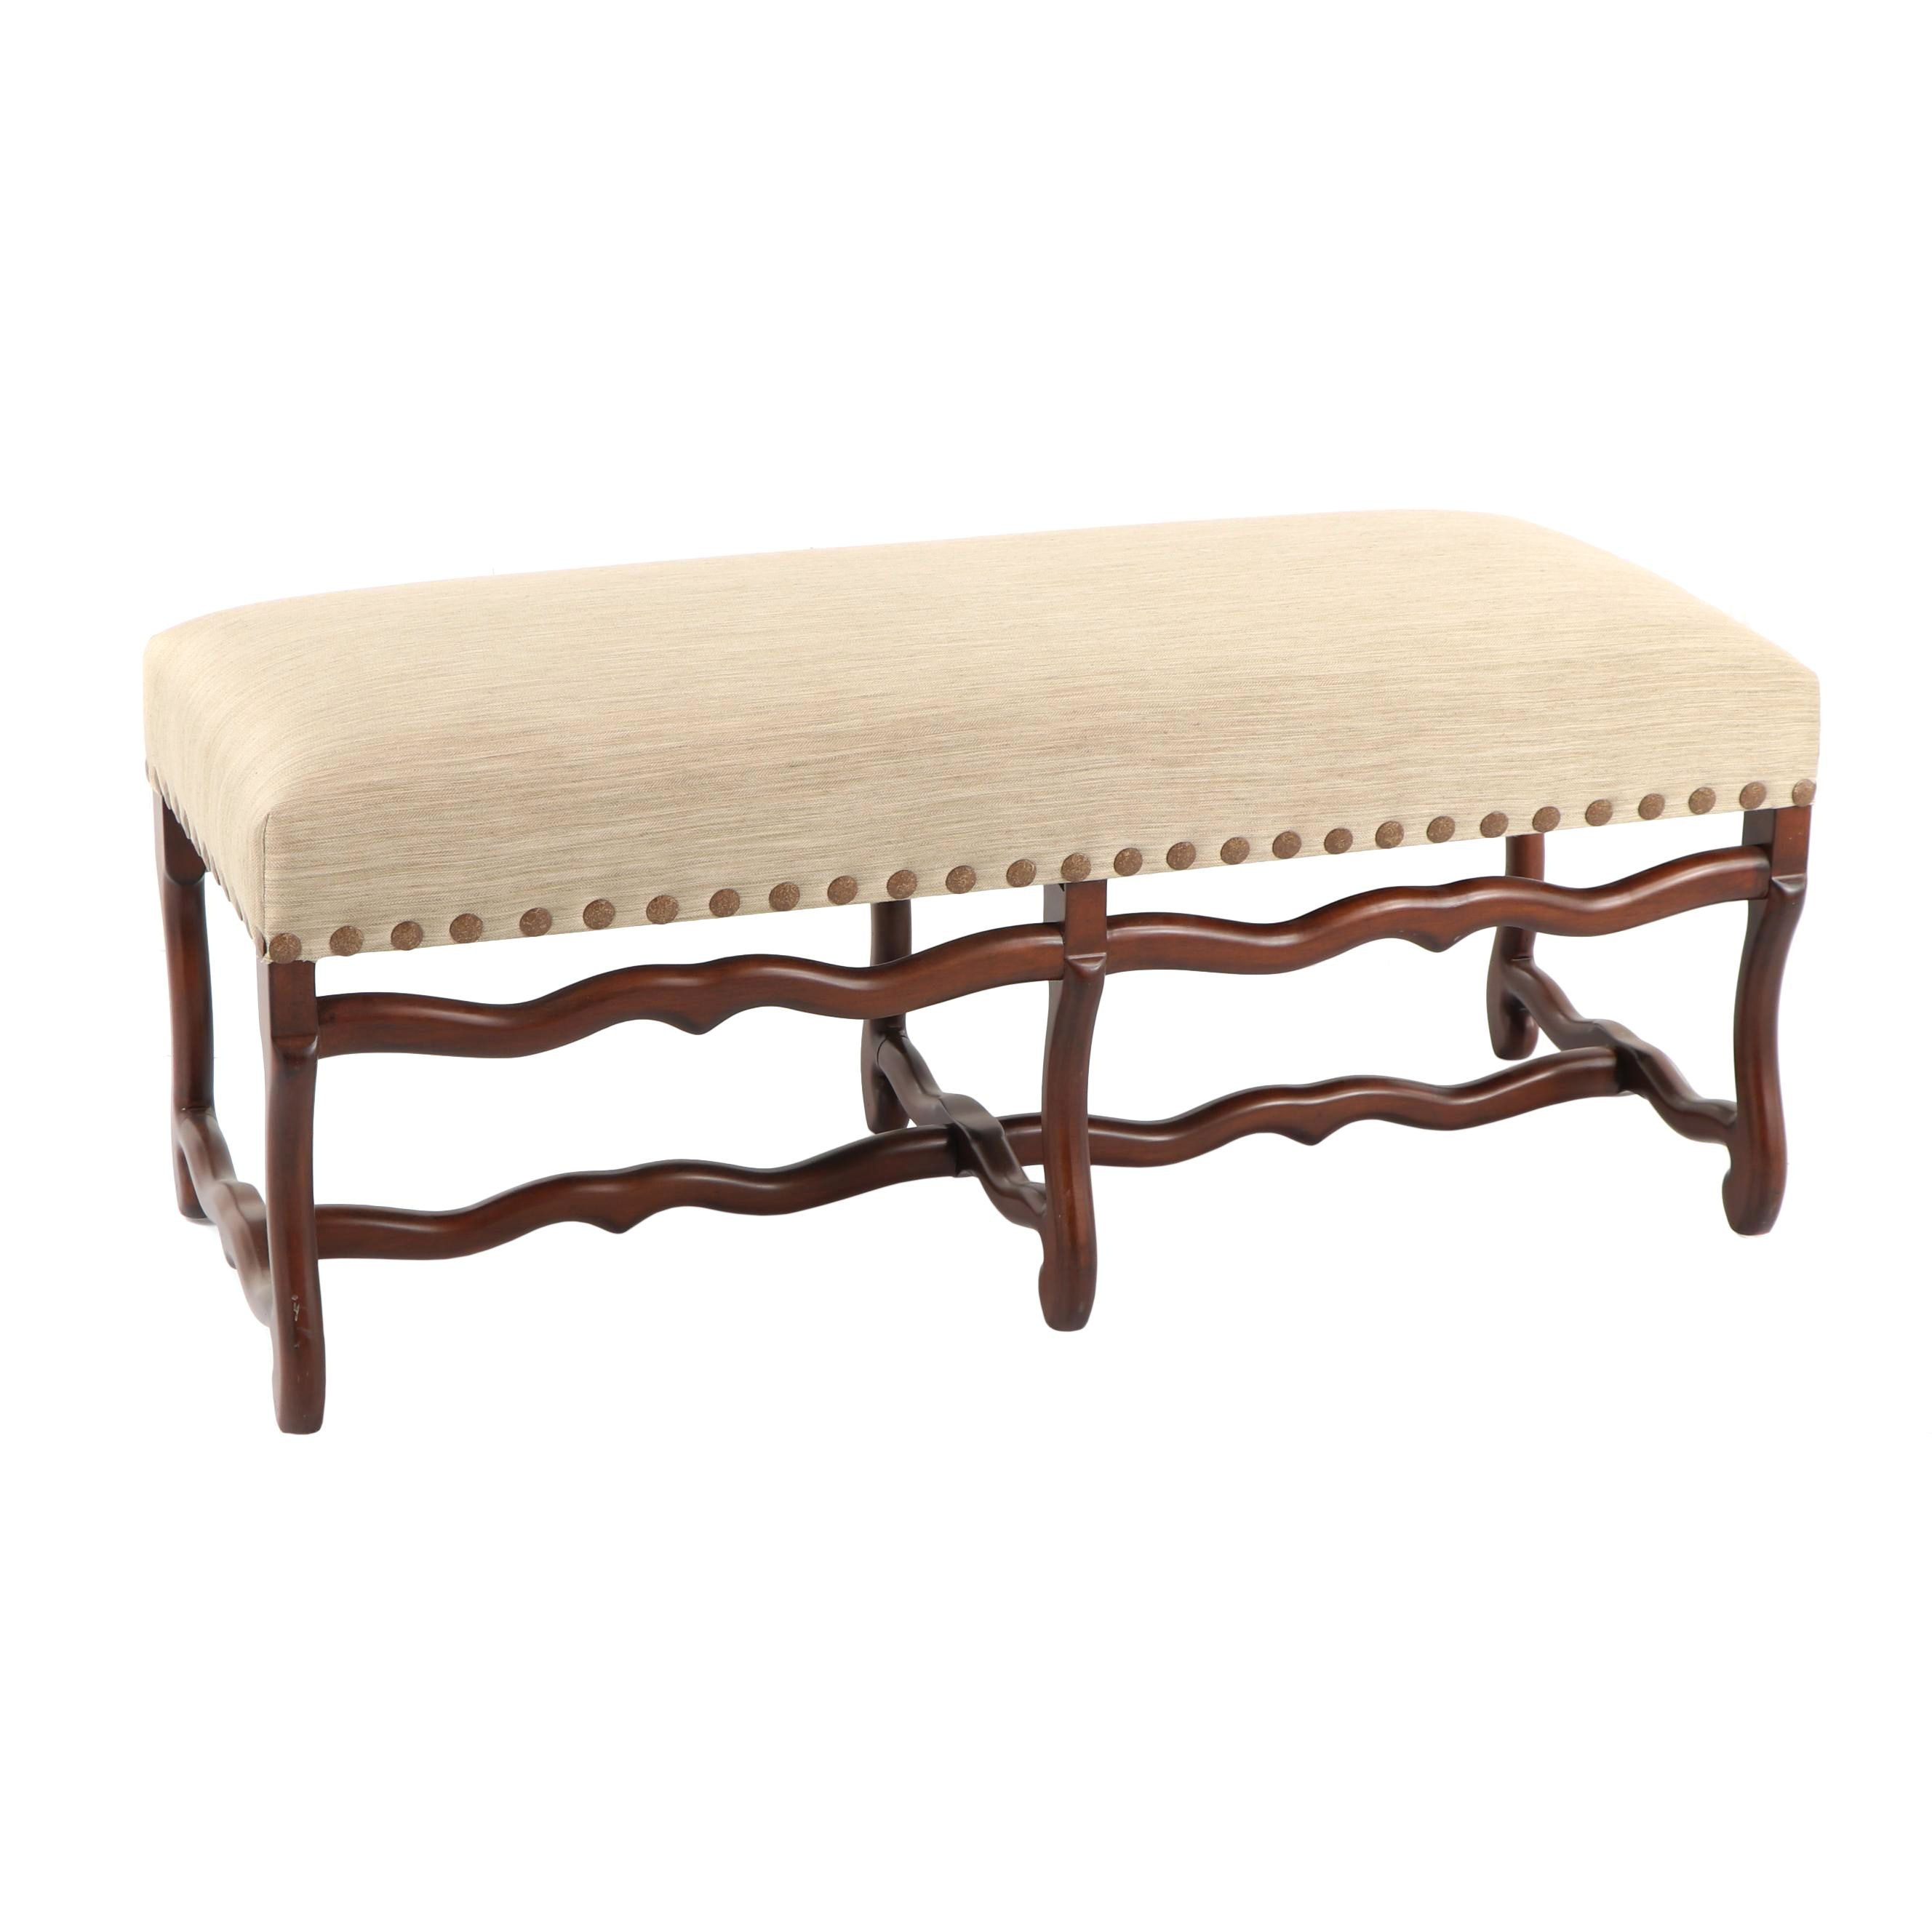 Louis XIII Style Custom Upholstered Bench